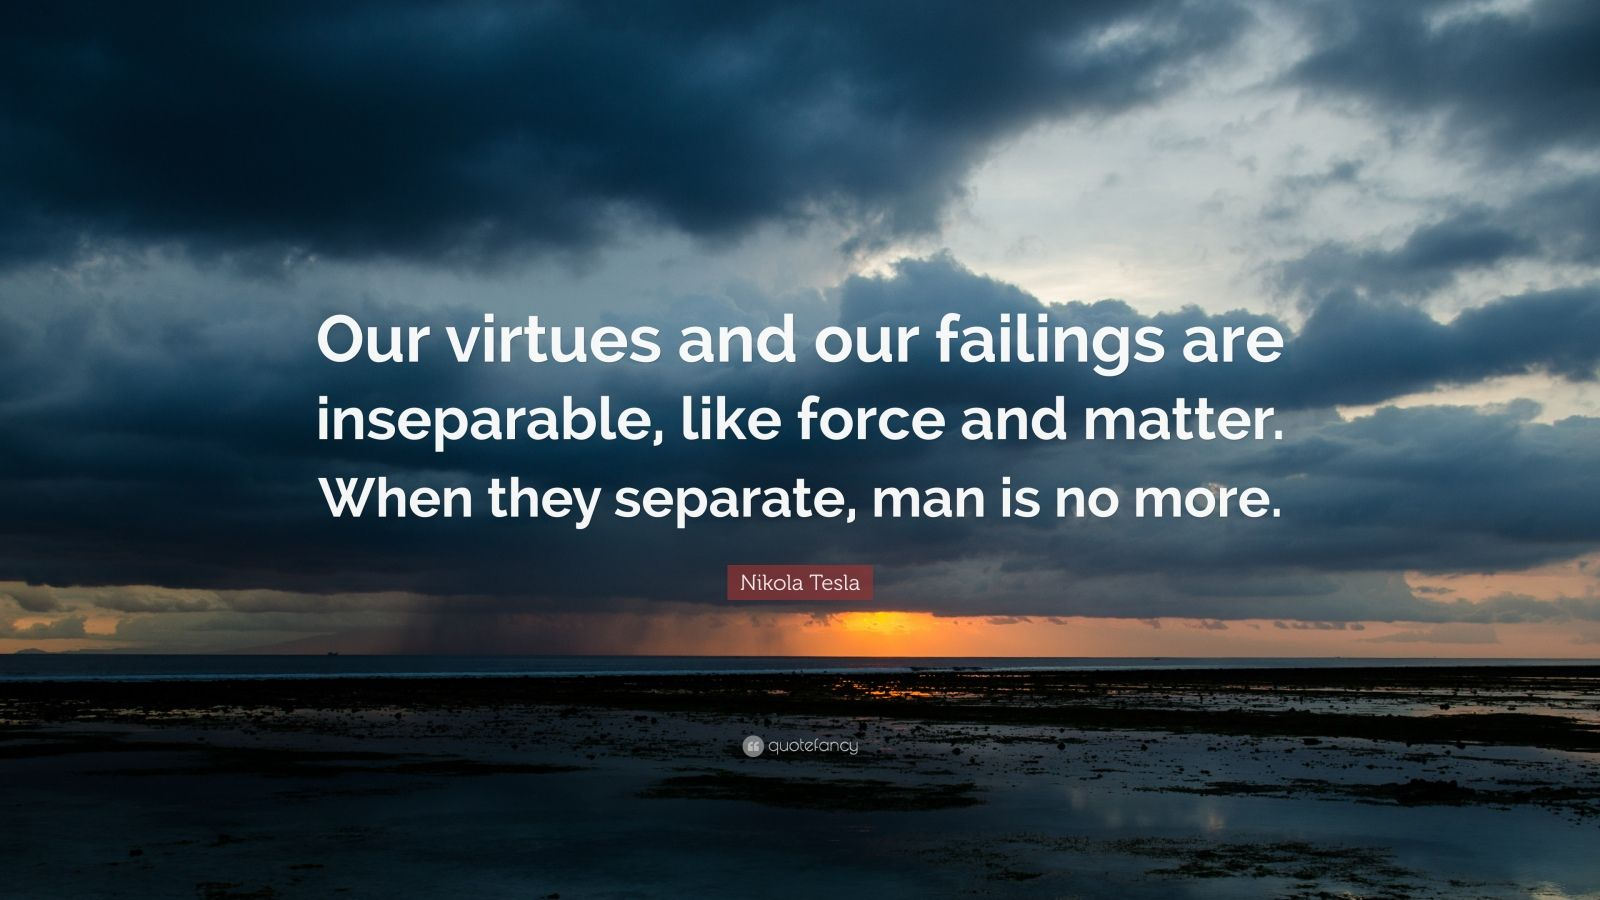 """Nikola Tesla Quote: """"Our virtues and our failings are inseparable, like force and matter. When they separate, man is no more."""""""